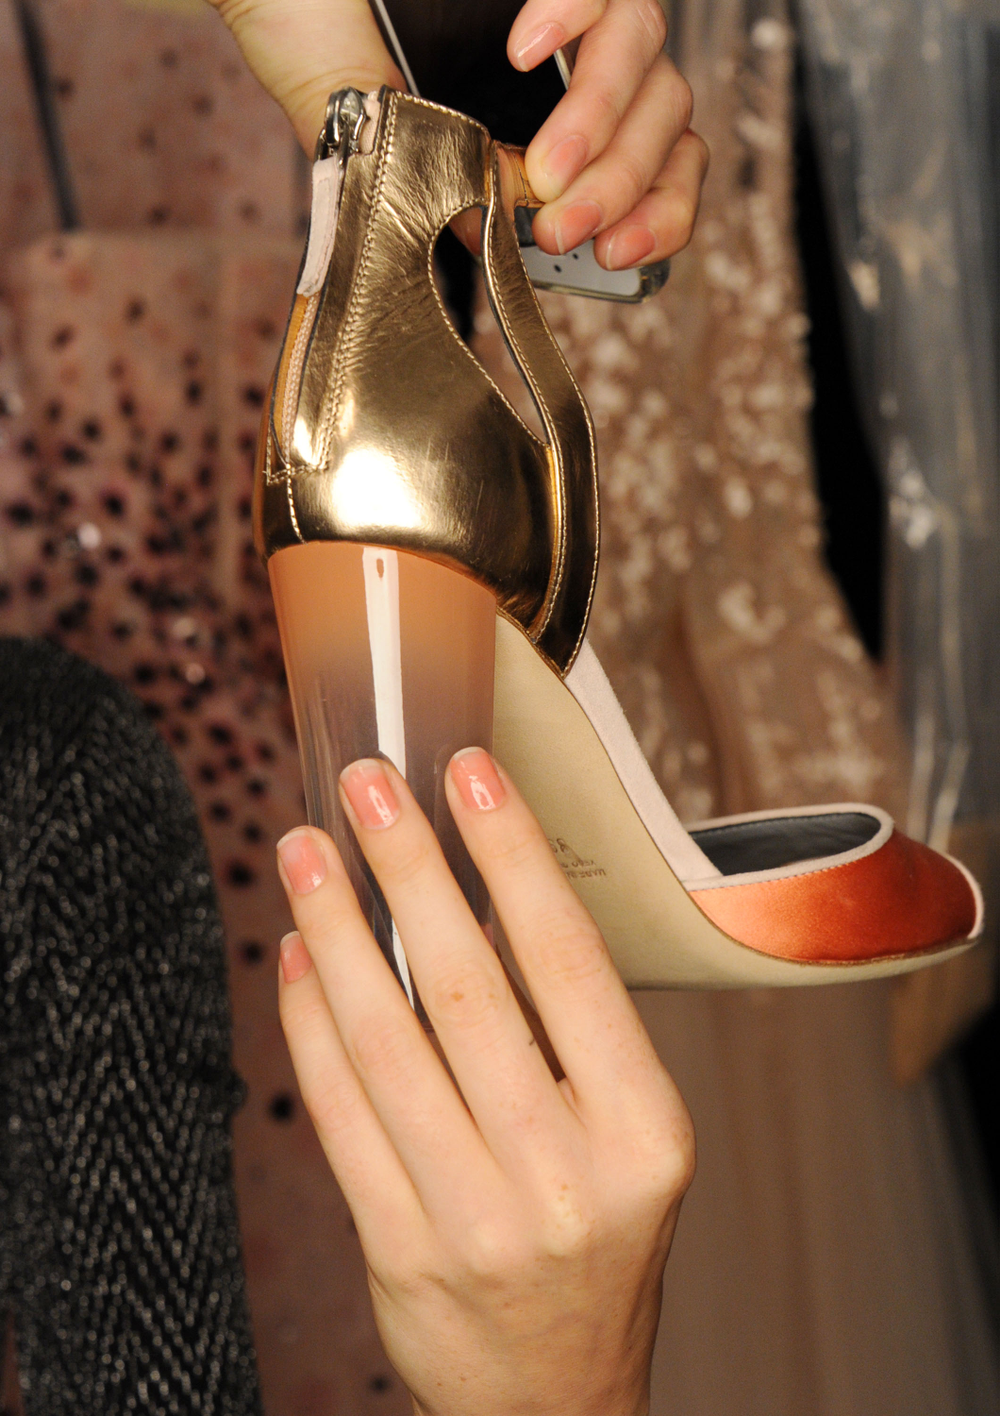 <p>Gina Edwards was inspired by the gorgeous thick, clear Lucite heels featured in the show and Lhuillier's own inspiration of the pastels illuminating the sky just before sunrise. Photo courtesy of Morgan Taylor. &nbsp;</p>